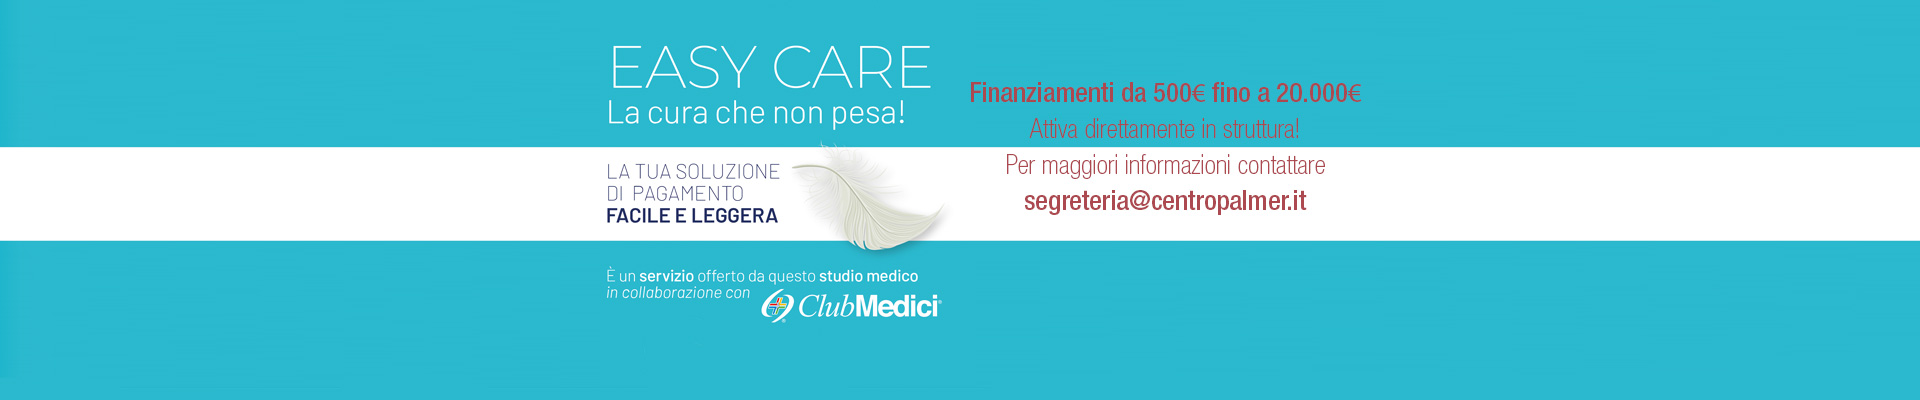 Easy Care in collaborazione con Centro Palmer - slide